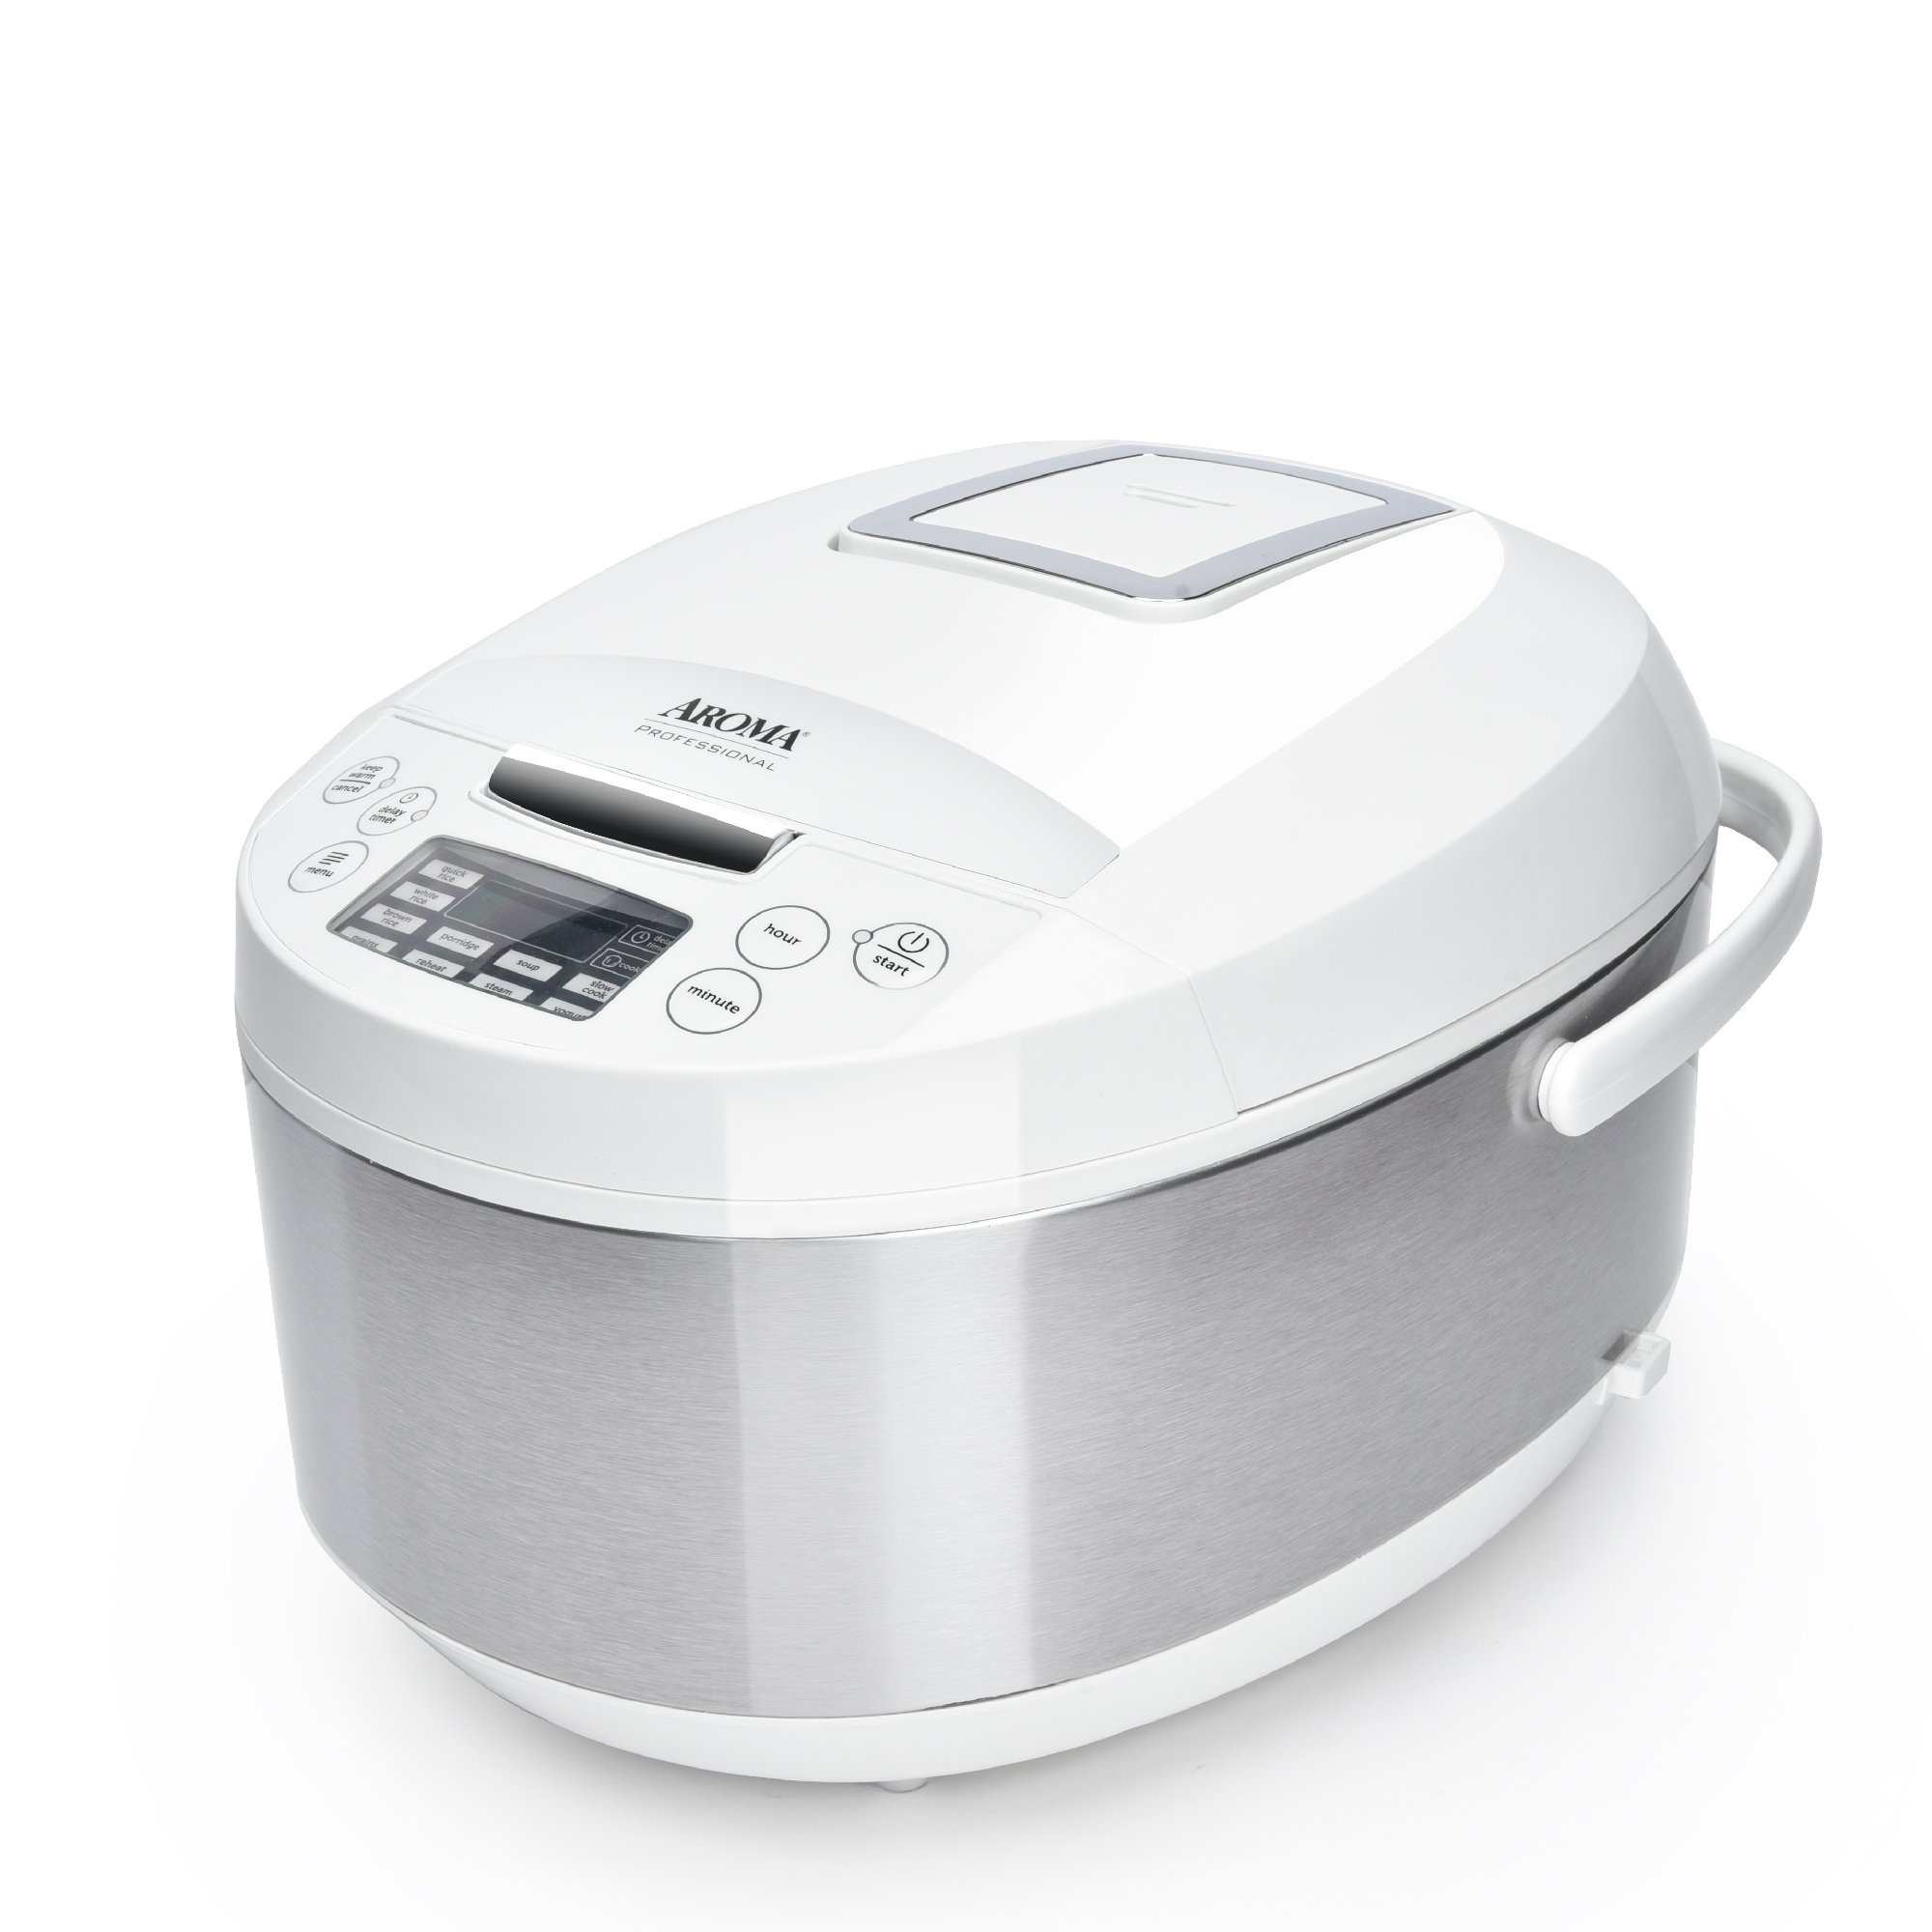 Best Rated In Rice Cookers Helpful Customer Reviews Tiger Cooker Wiring Diagram Aroma Housewares Arc 6206c Ceramic Multicooker White Product Image